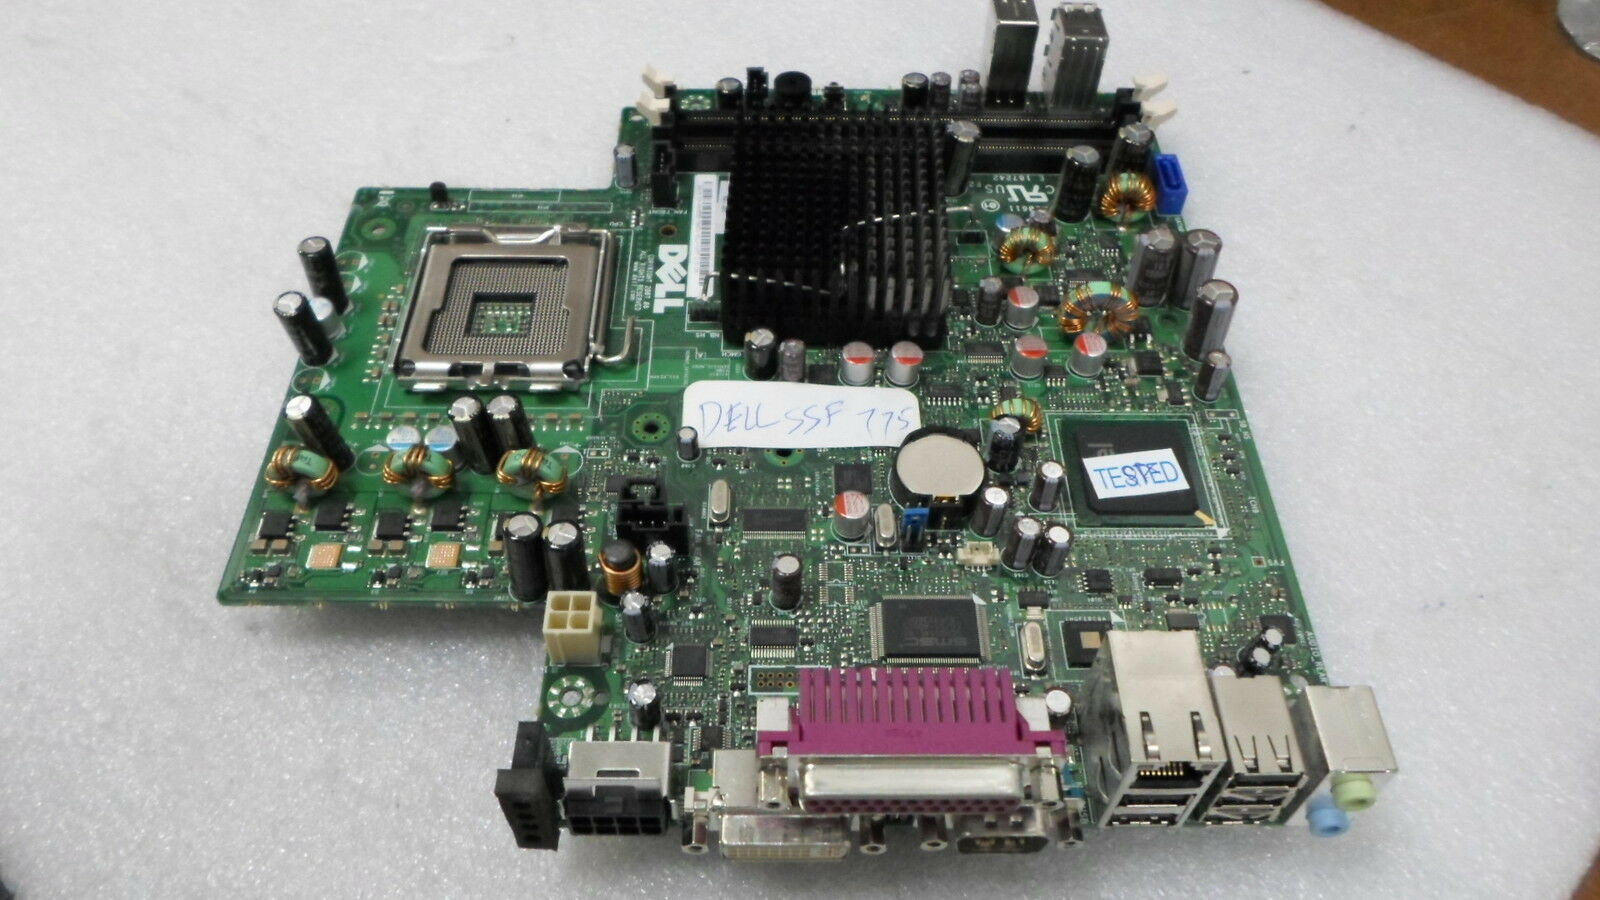 Dell 0Hx555 Hx555 Motherboard For Dell Optiplex 755 Sff Used & Tested 1 of  5FREE Shipping See More